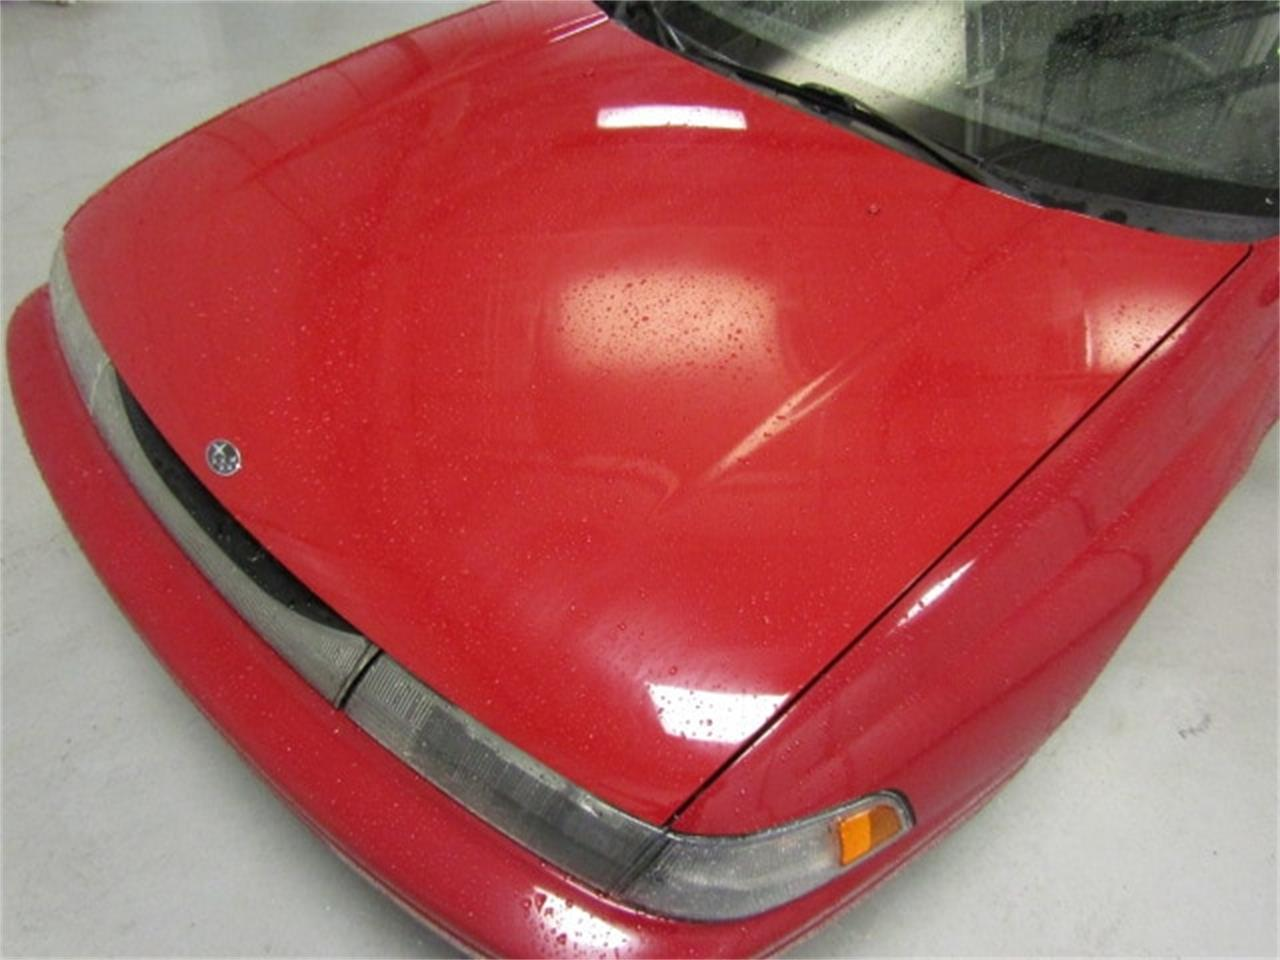 Large Picture of '94 SVX - $6,900.00 Offered by Duncan Imports & Classic Cars - LN5Q